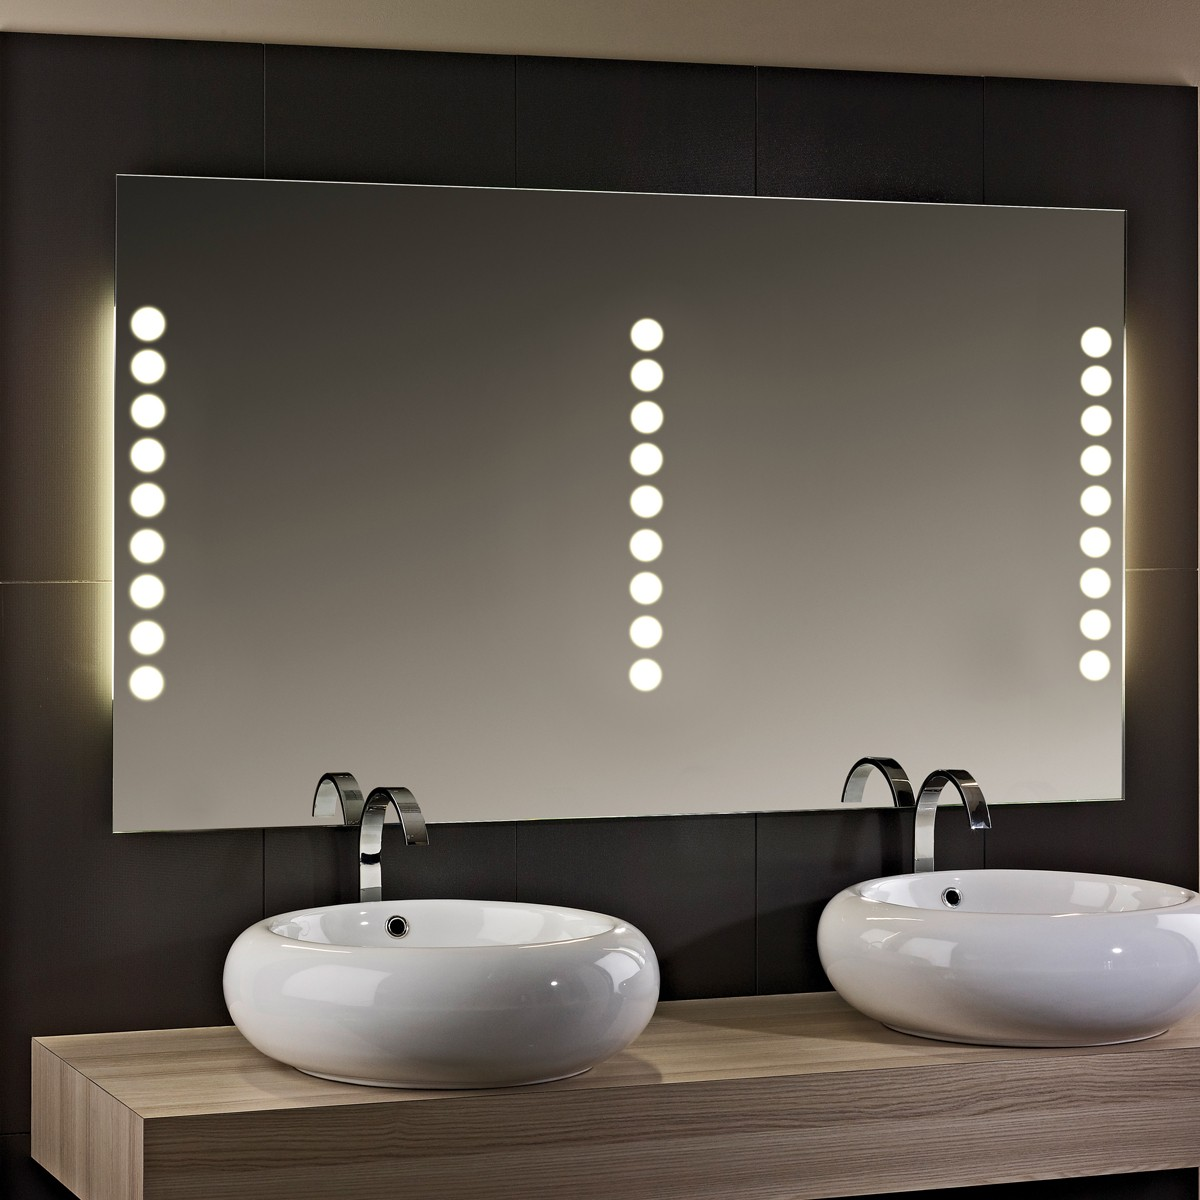 Illuminated Mirrors Bathroom: Illuminated Bathroom Mirrors